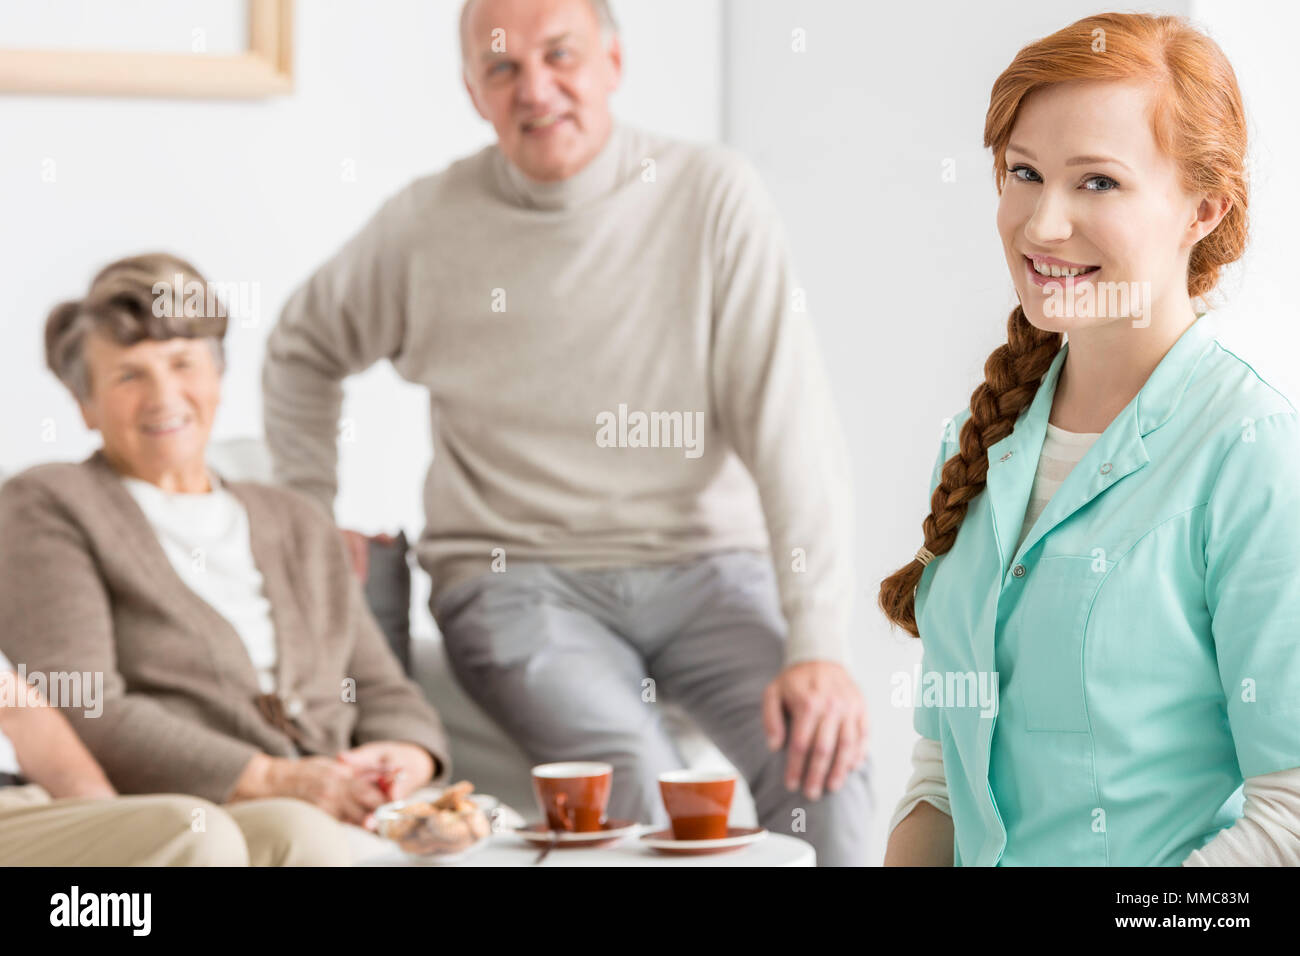 Smiled elder charges with their red-haired nurse - Stock Image